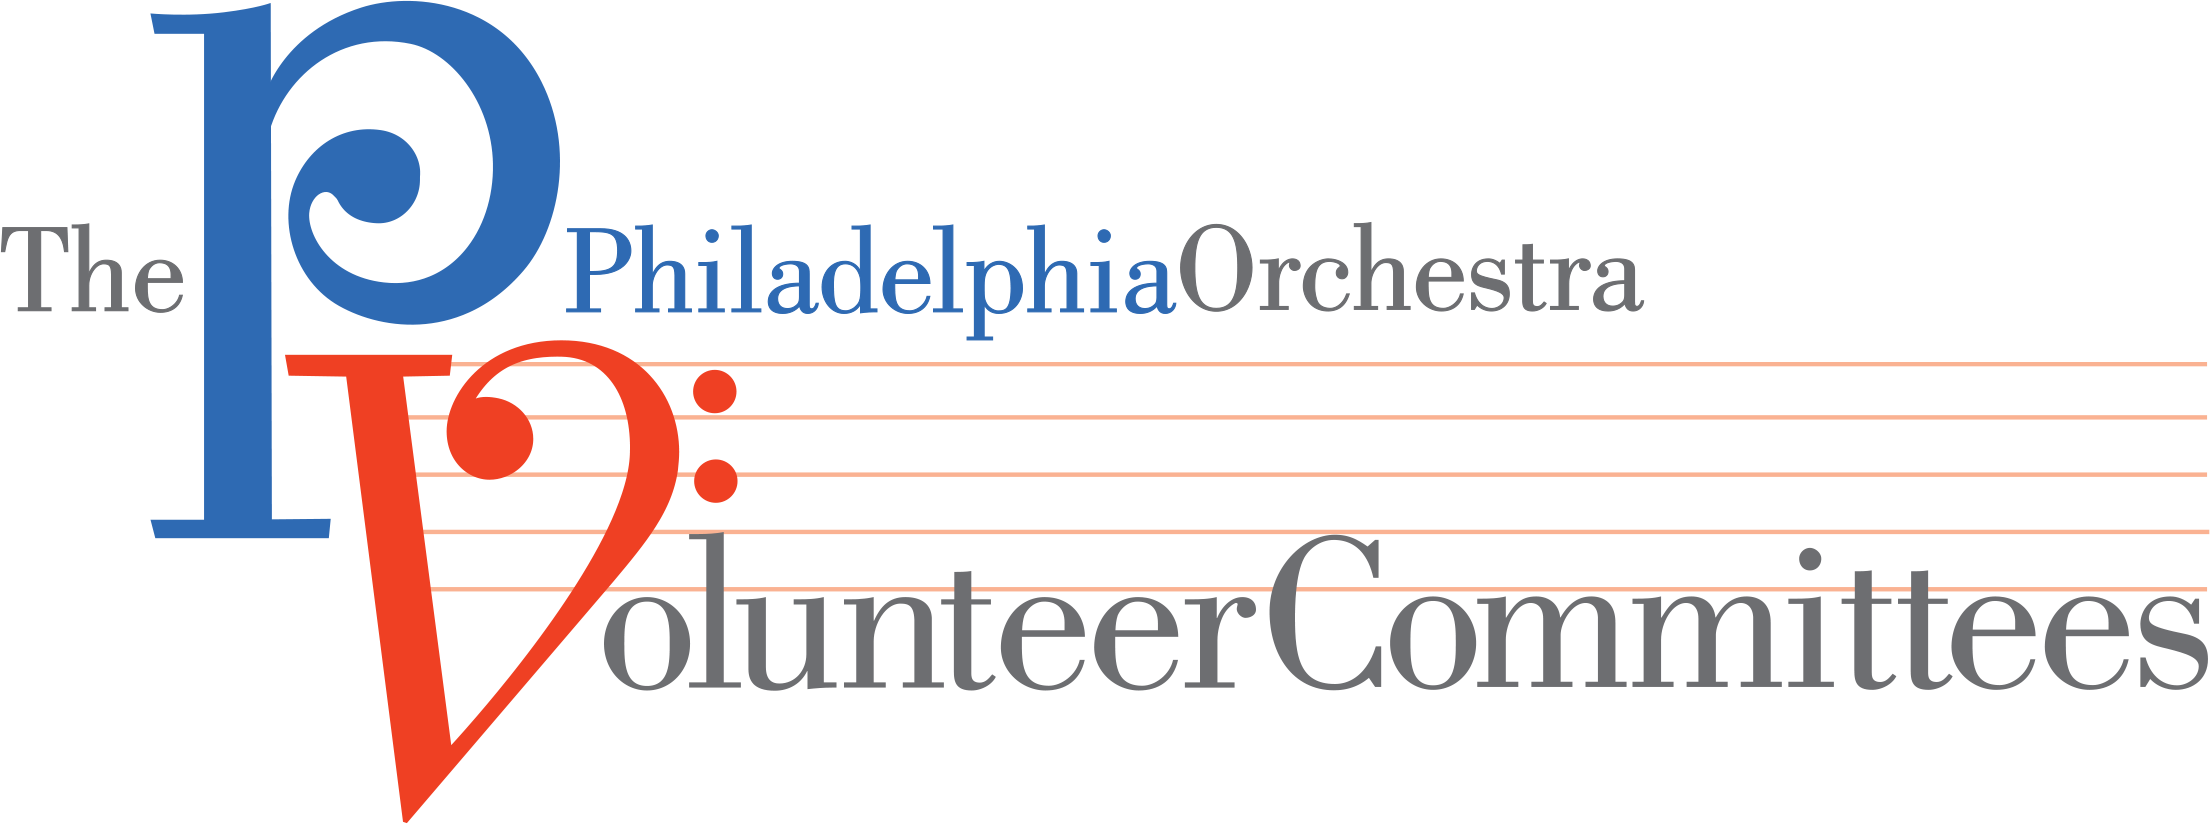 Philadelphia Orchestra Volunteers